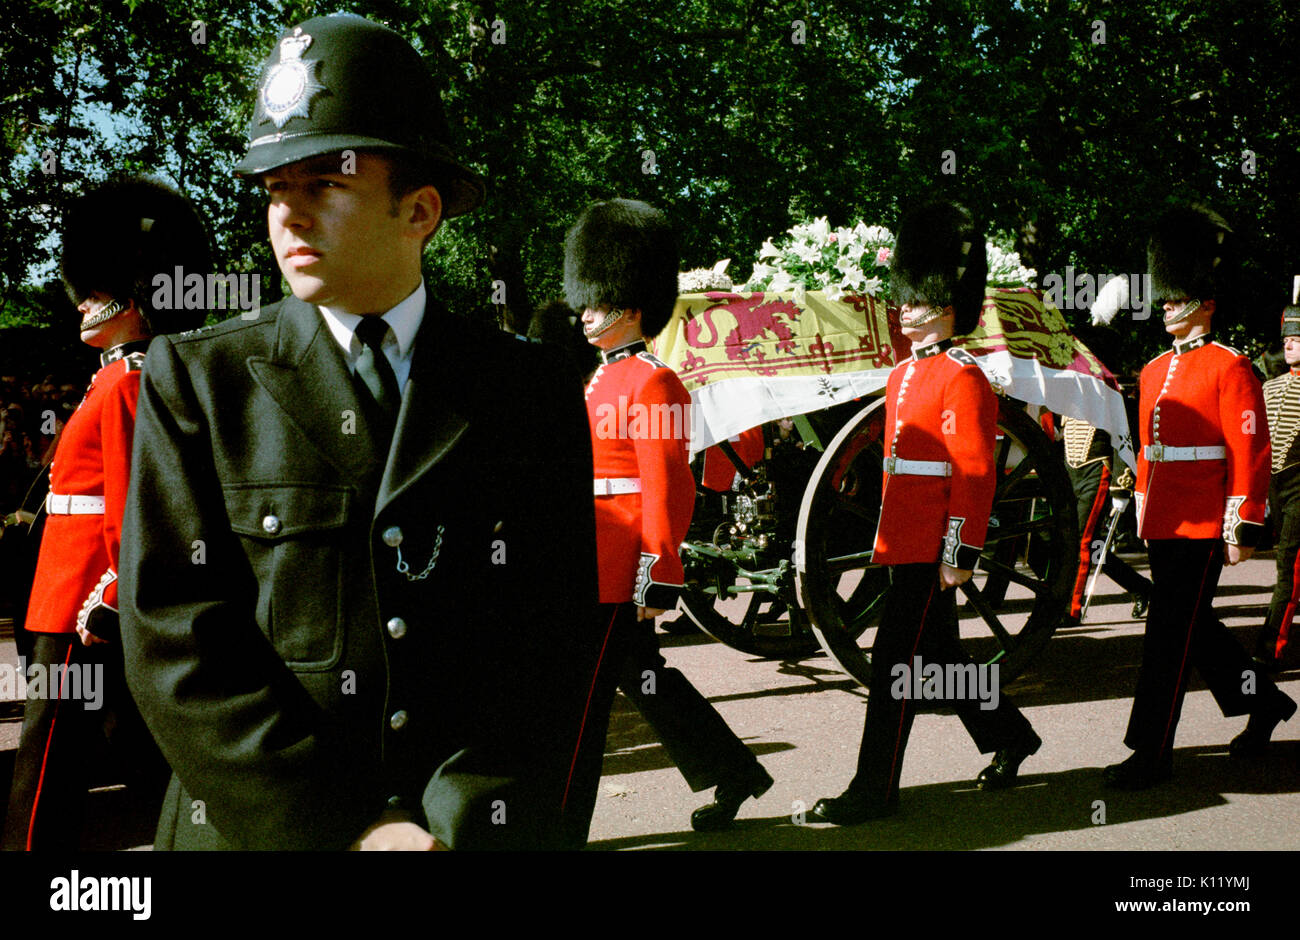 London, UK, 6th September, 1997. Funeral of Diana, Princess of Wales. Princess Diana's coffin draped with the royalStock Photo